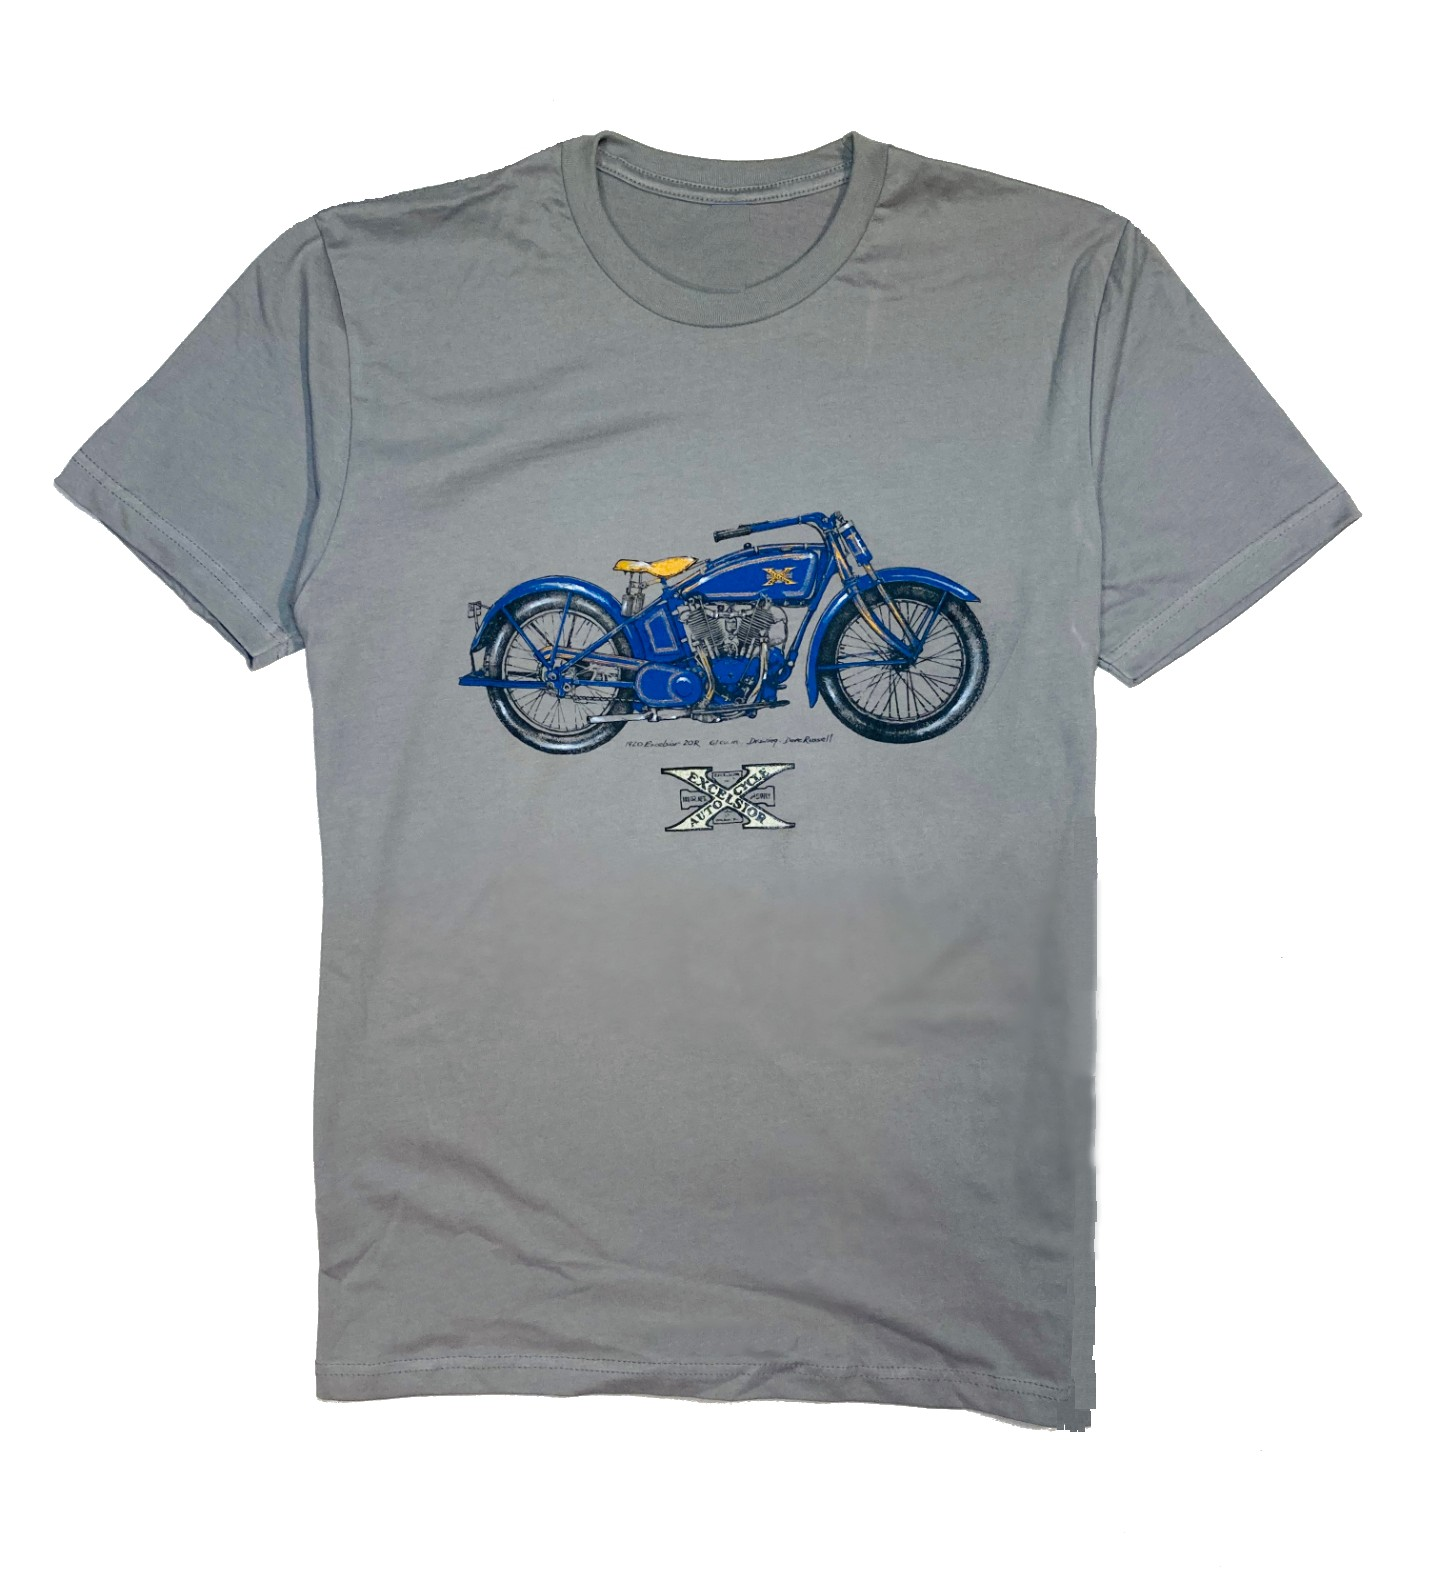 Excelsior motorcycle t-shirt